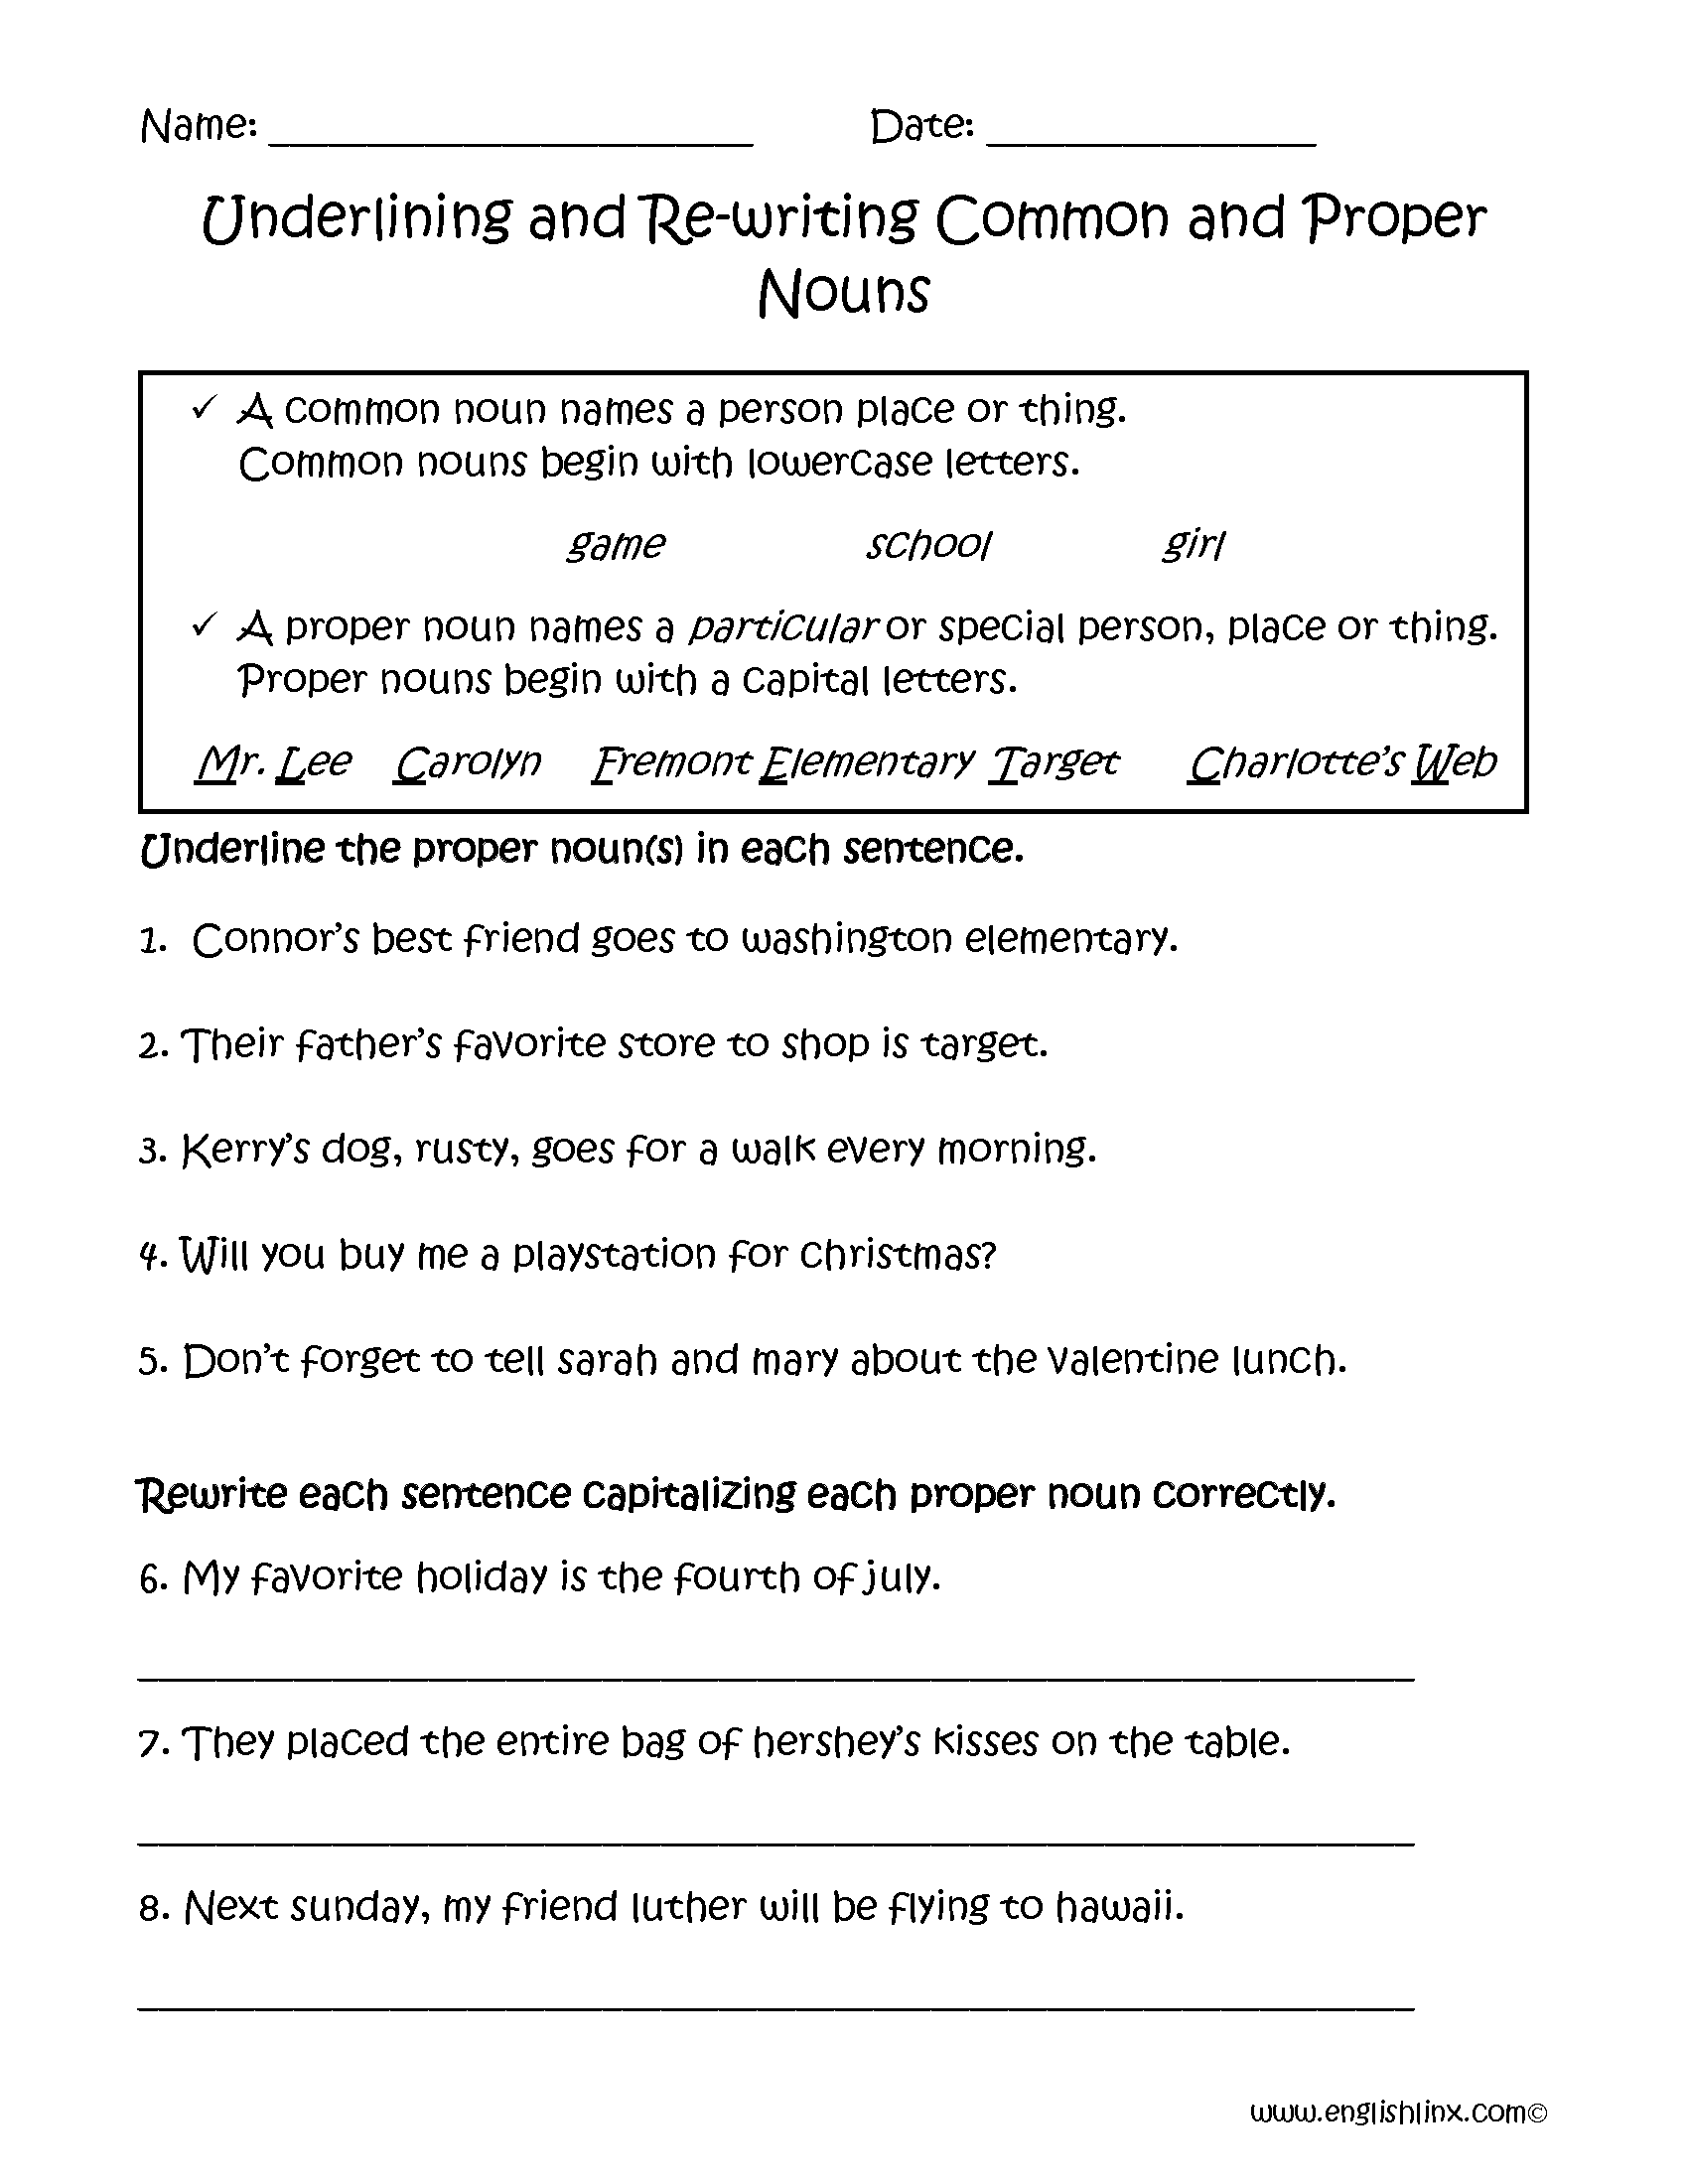 hight resolution of Proper and Common Nouns Worksheets   Underlining and Rewriting Proper and  Common Nouns Worksheets